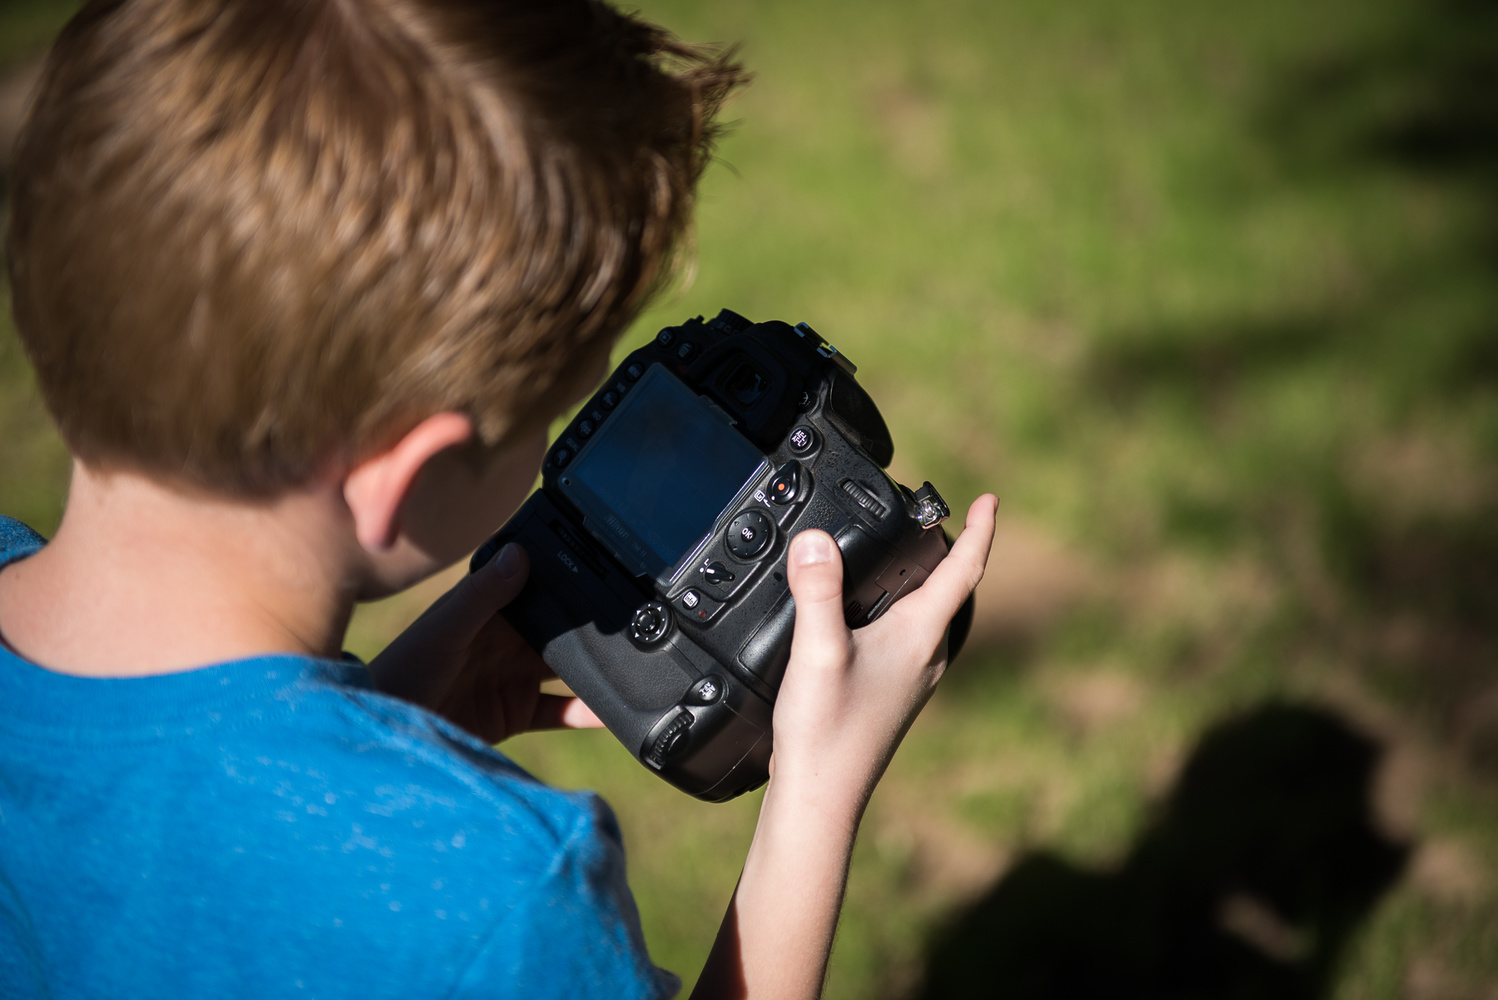 Camera Dslr Camera Use teaching your child to use a dslr camera fstoppers devices like tablets and smartphones with relatively complicated apps for kids often have cameras built in if phones photo ga